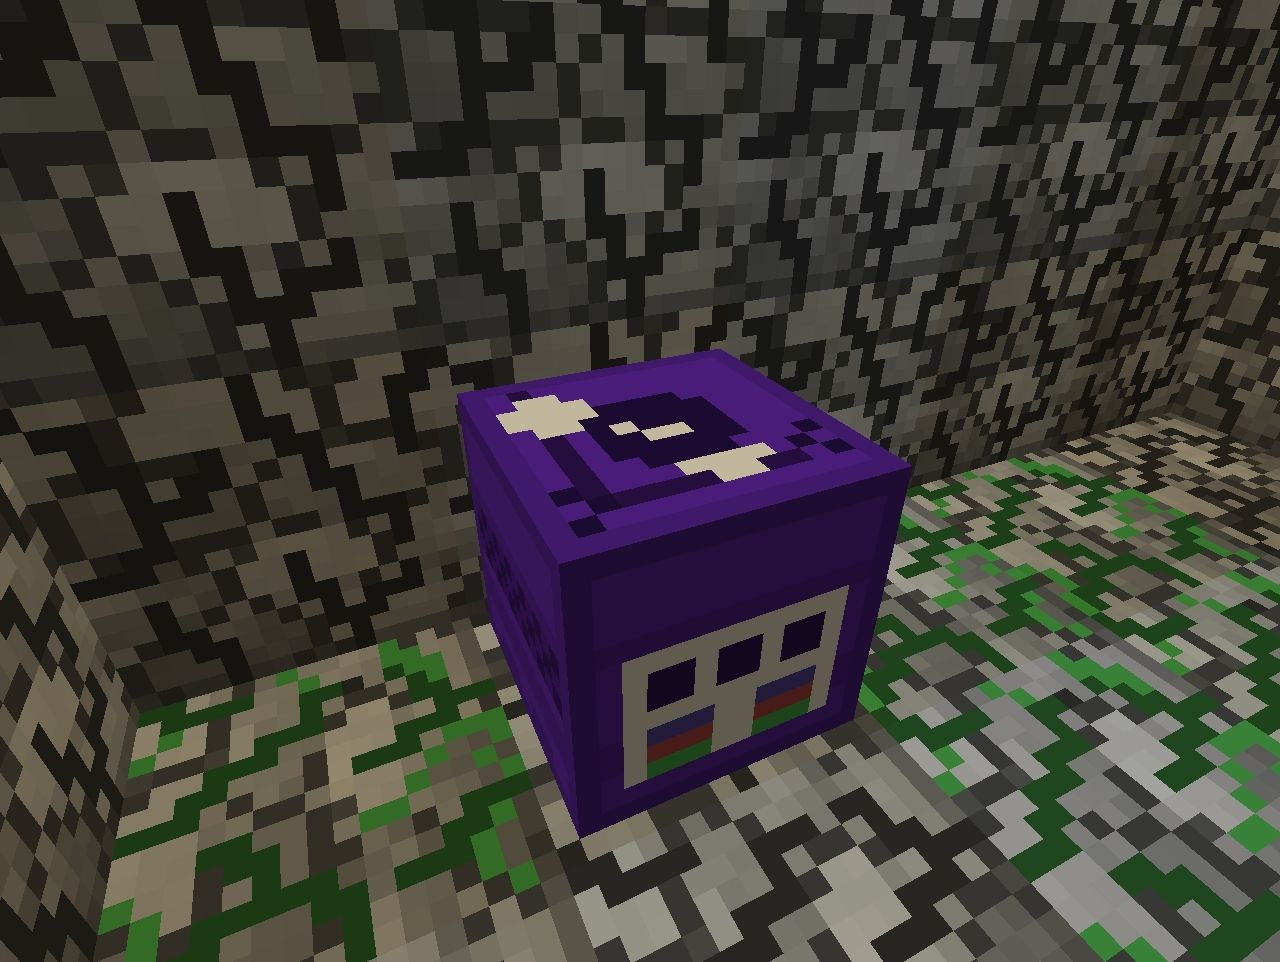 Gamecube chests